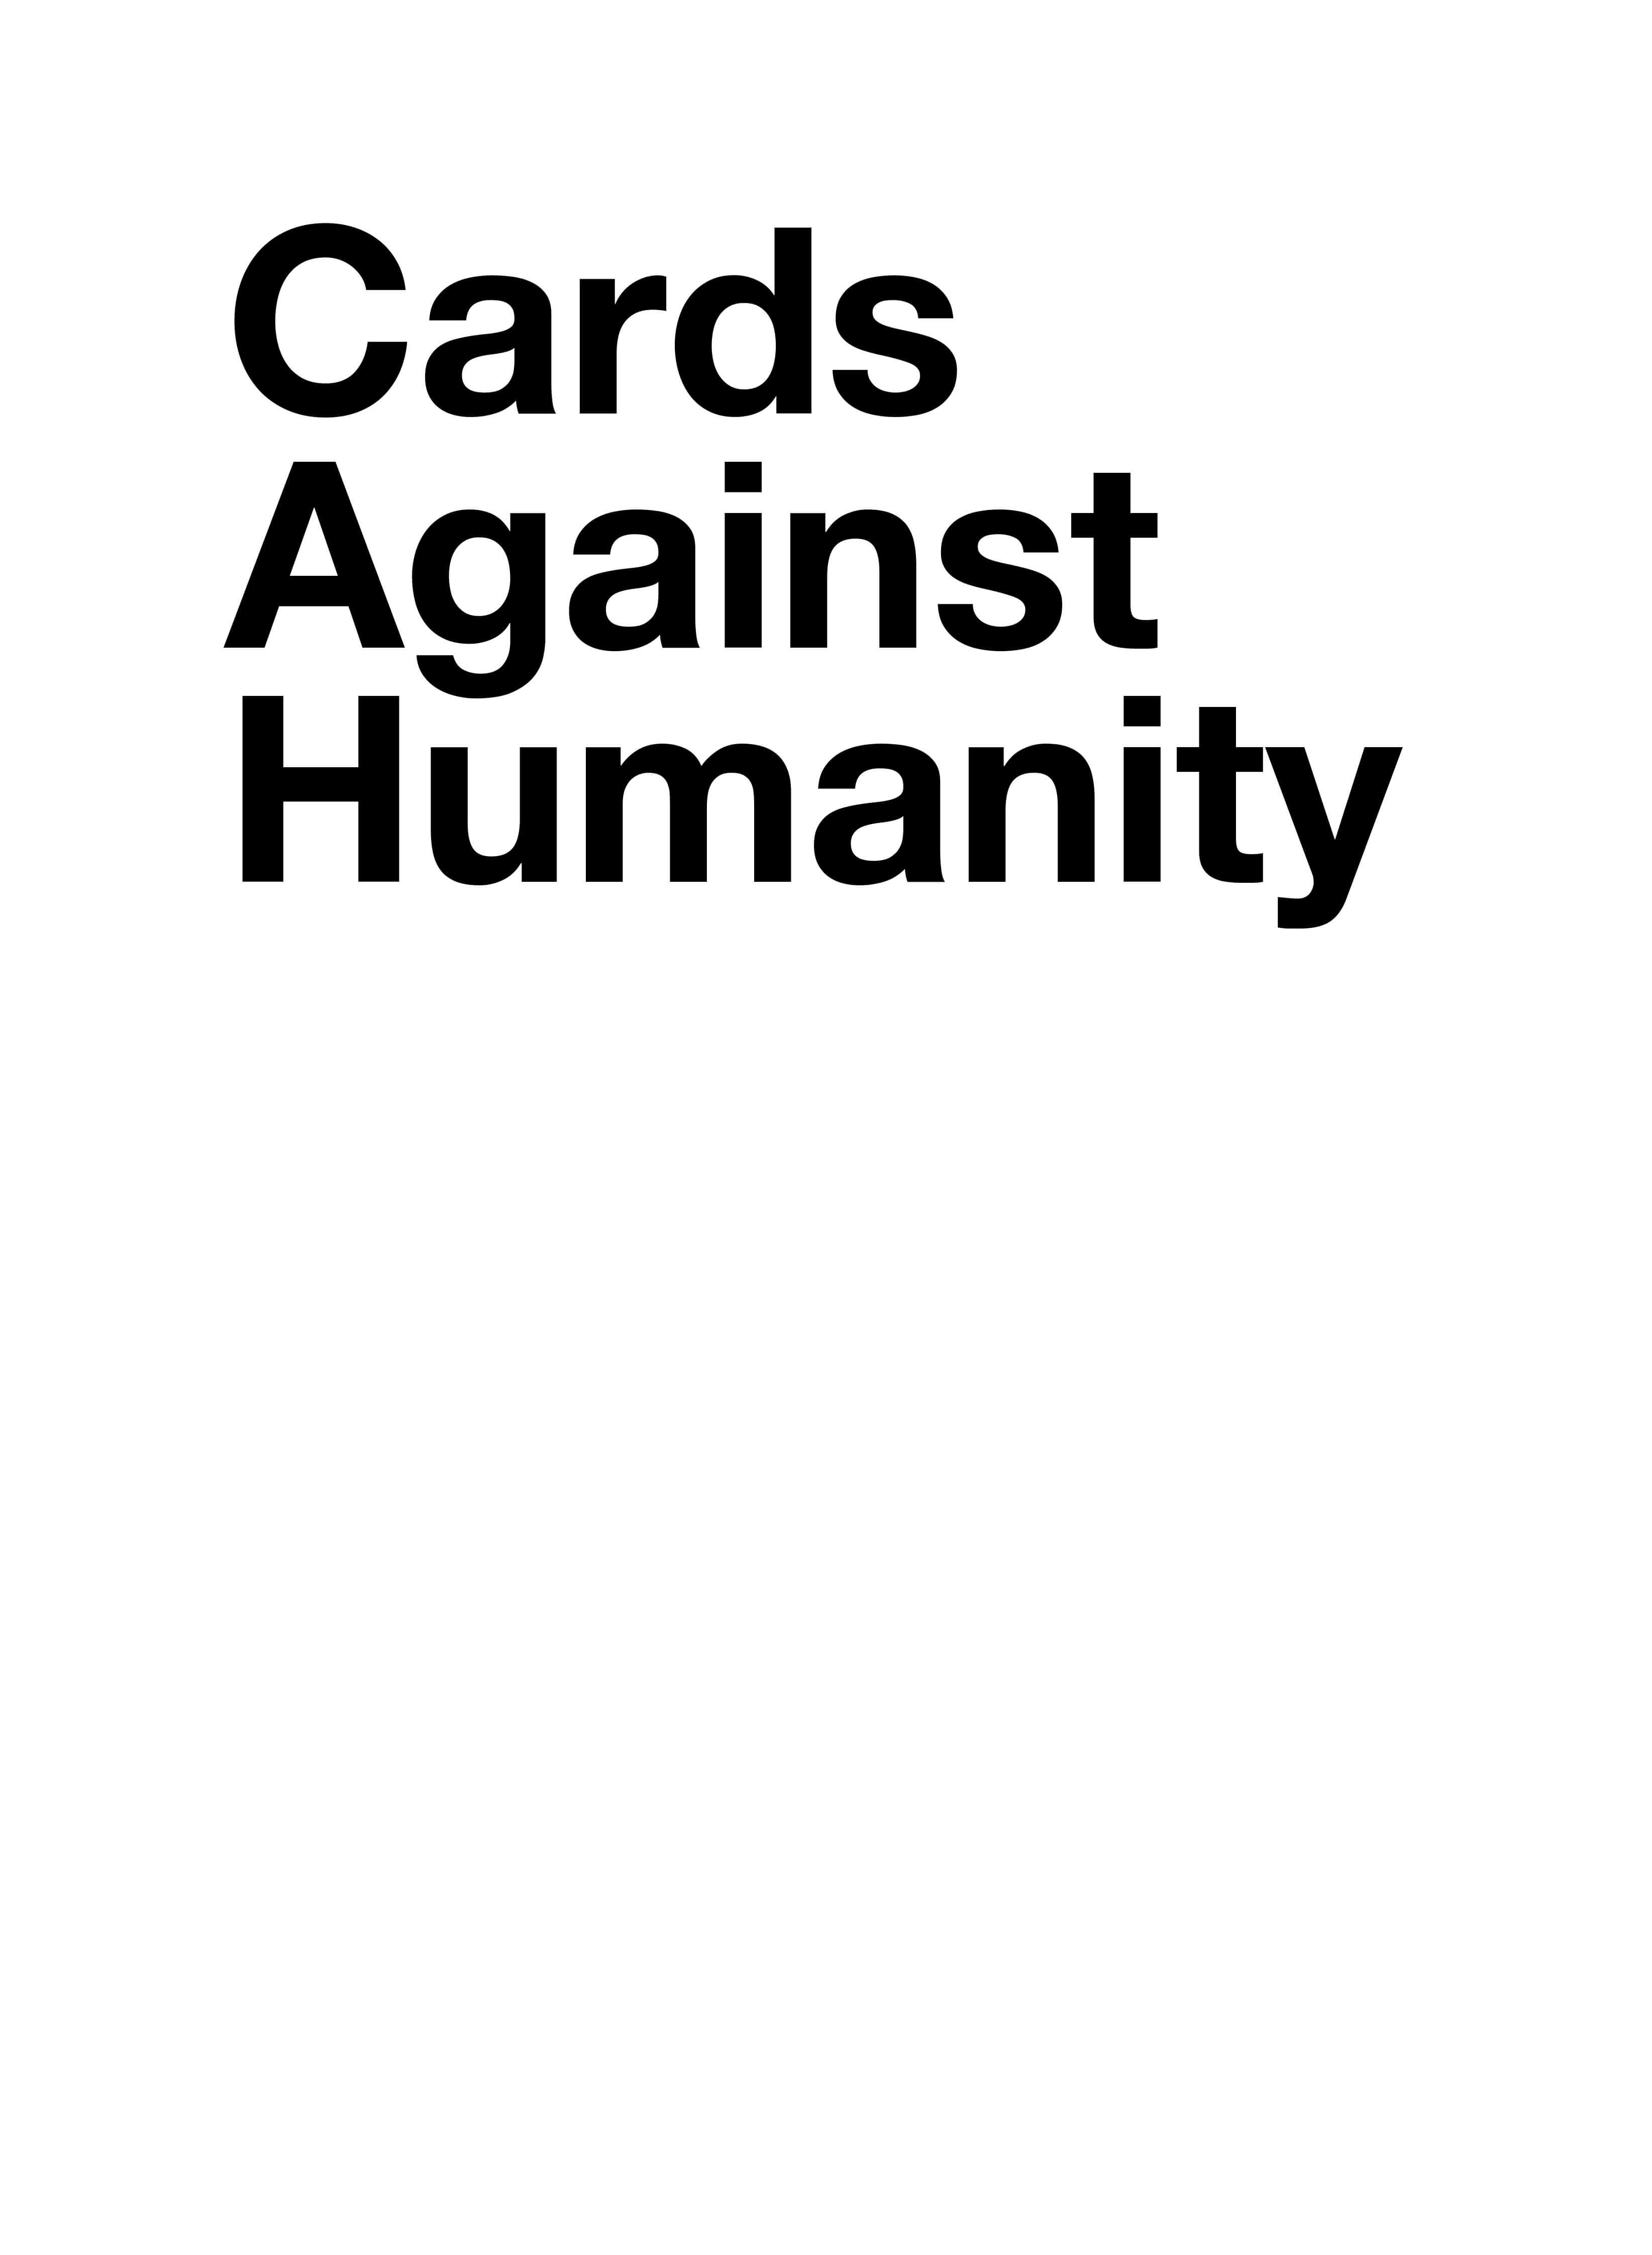 Cards Against Humanity - Card Generator Regarding Cards Against Humanity Template